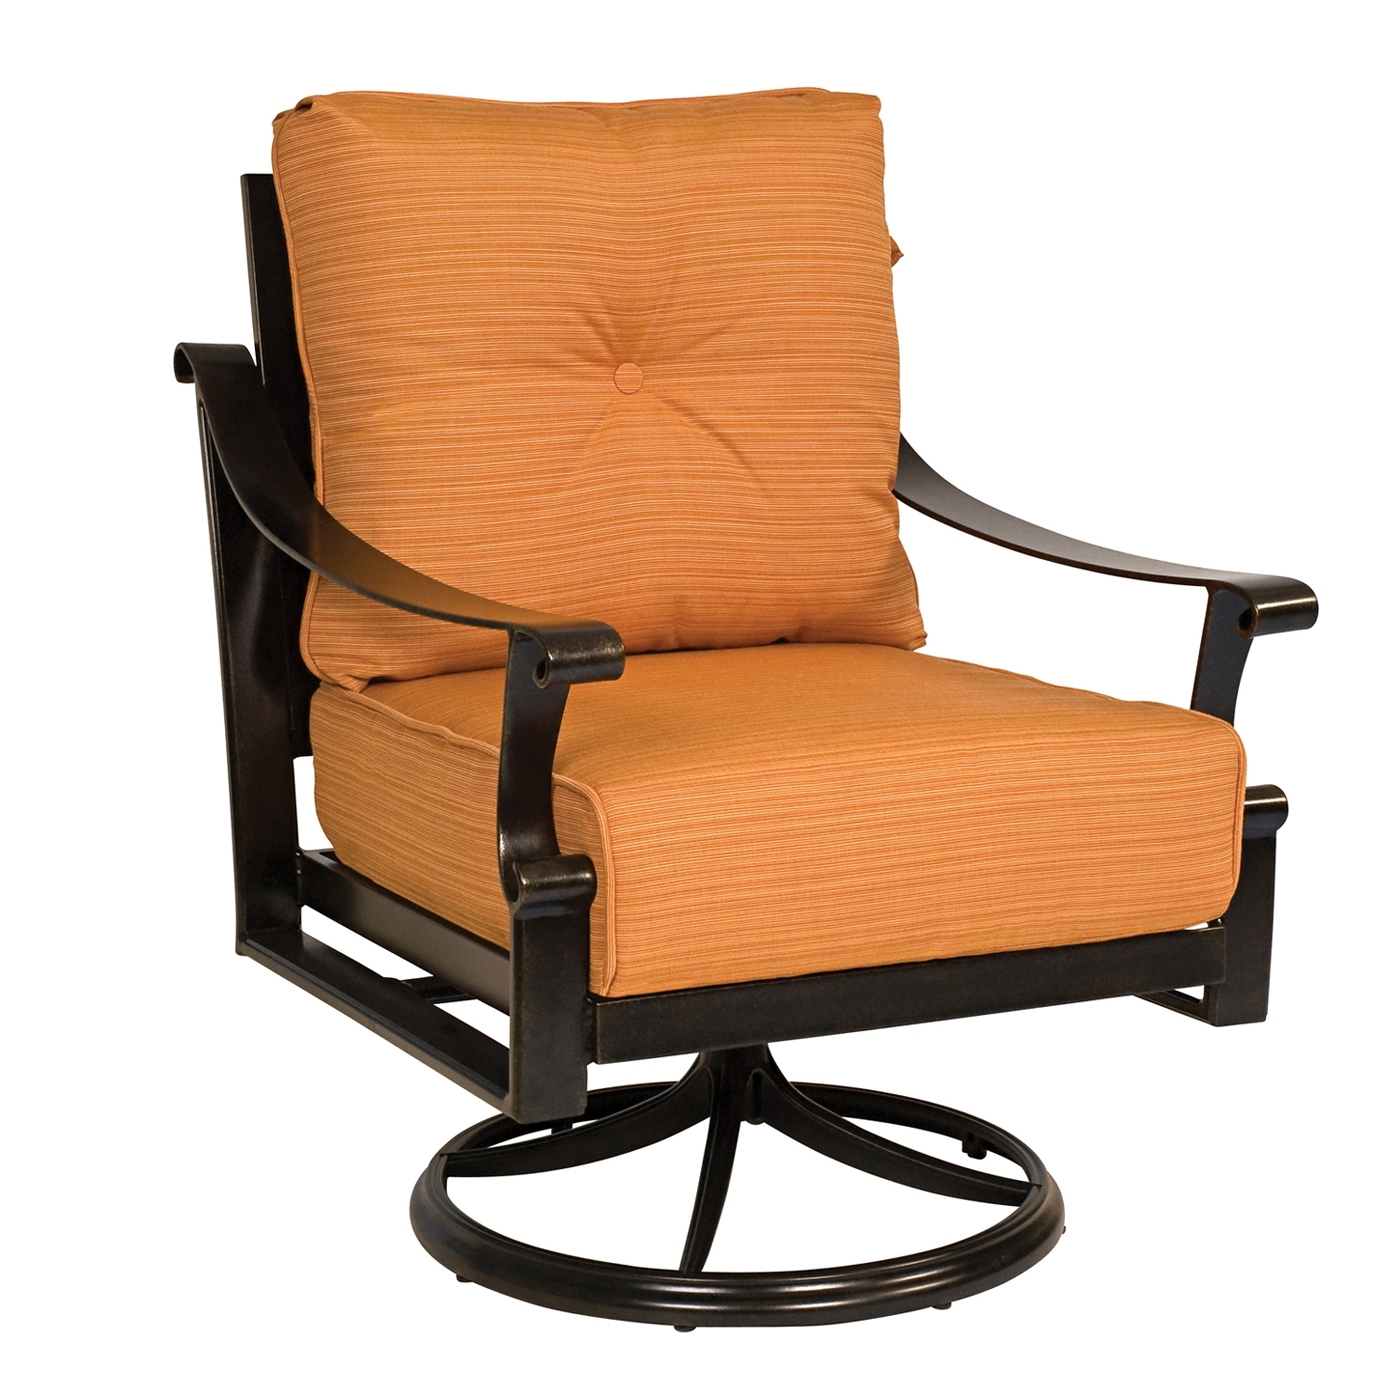 Awesome Swivel Rocker Patio Chairs Yw5Fb Mauriciohm Com Entrancing With Regard To Padded Patio Rocking Chairs (#4 of 15)